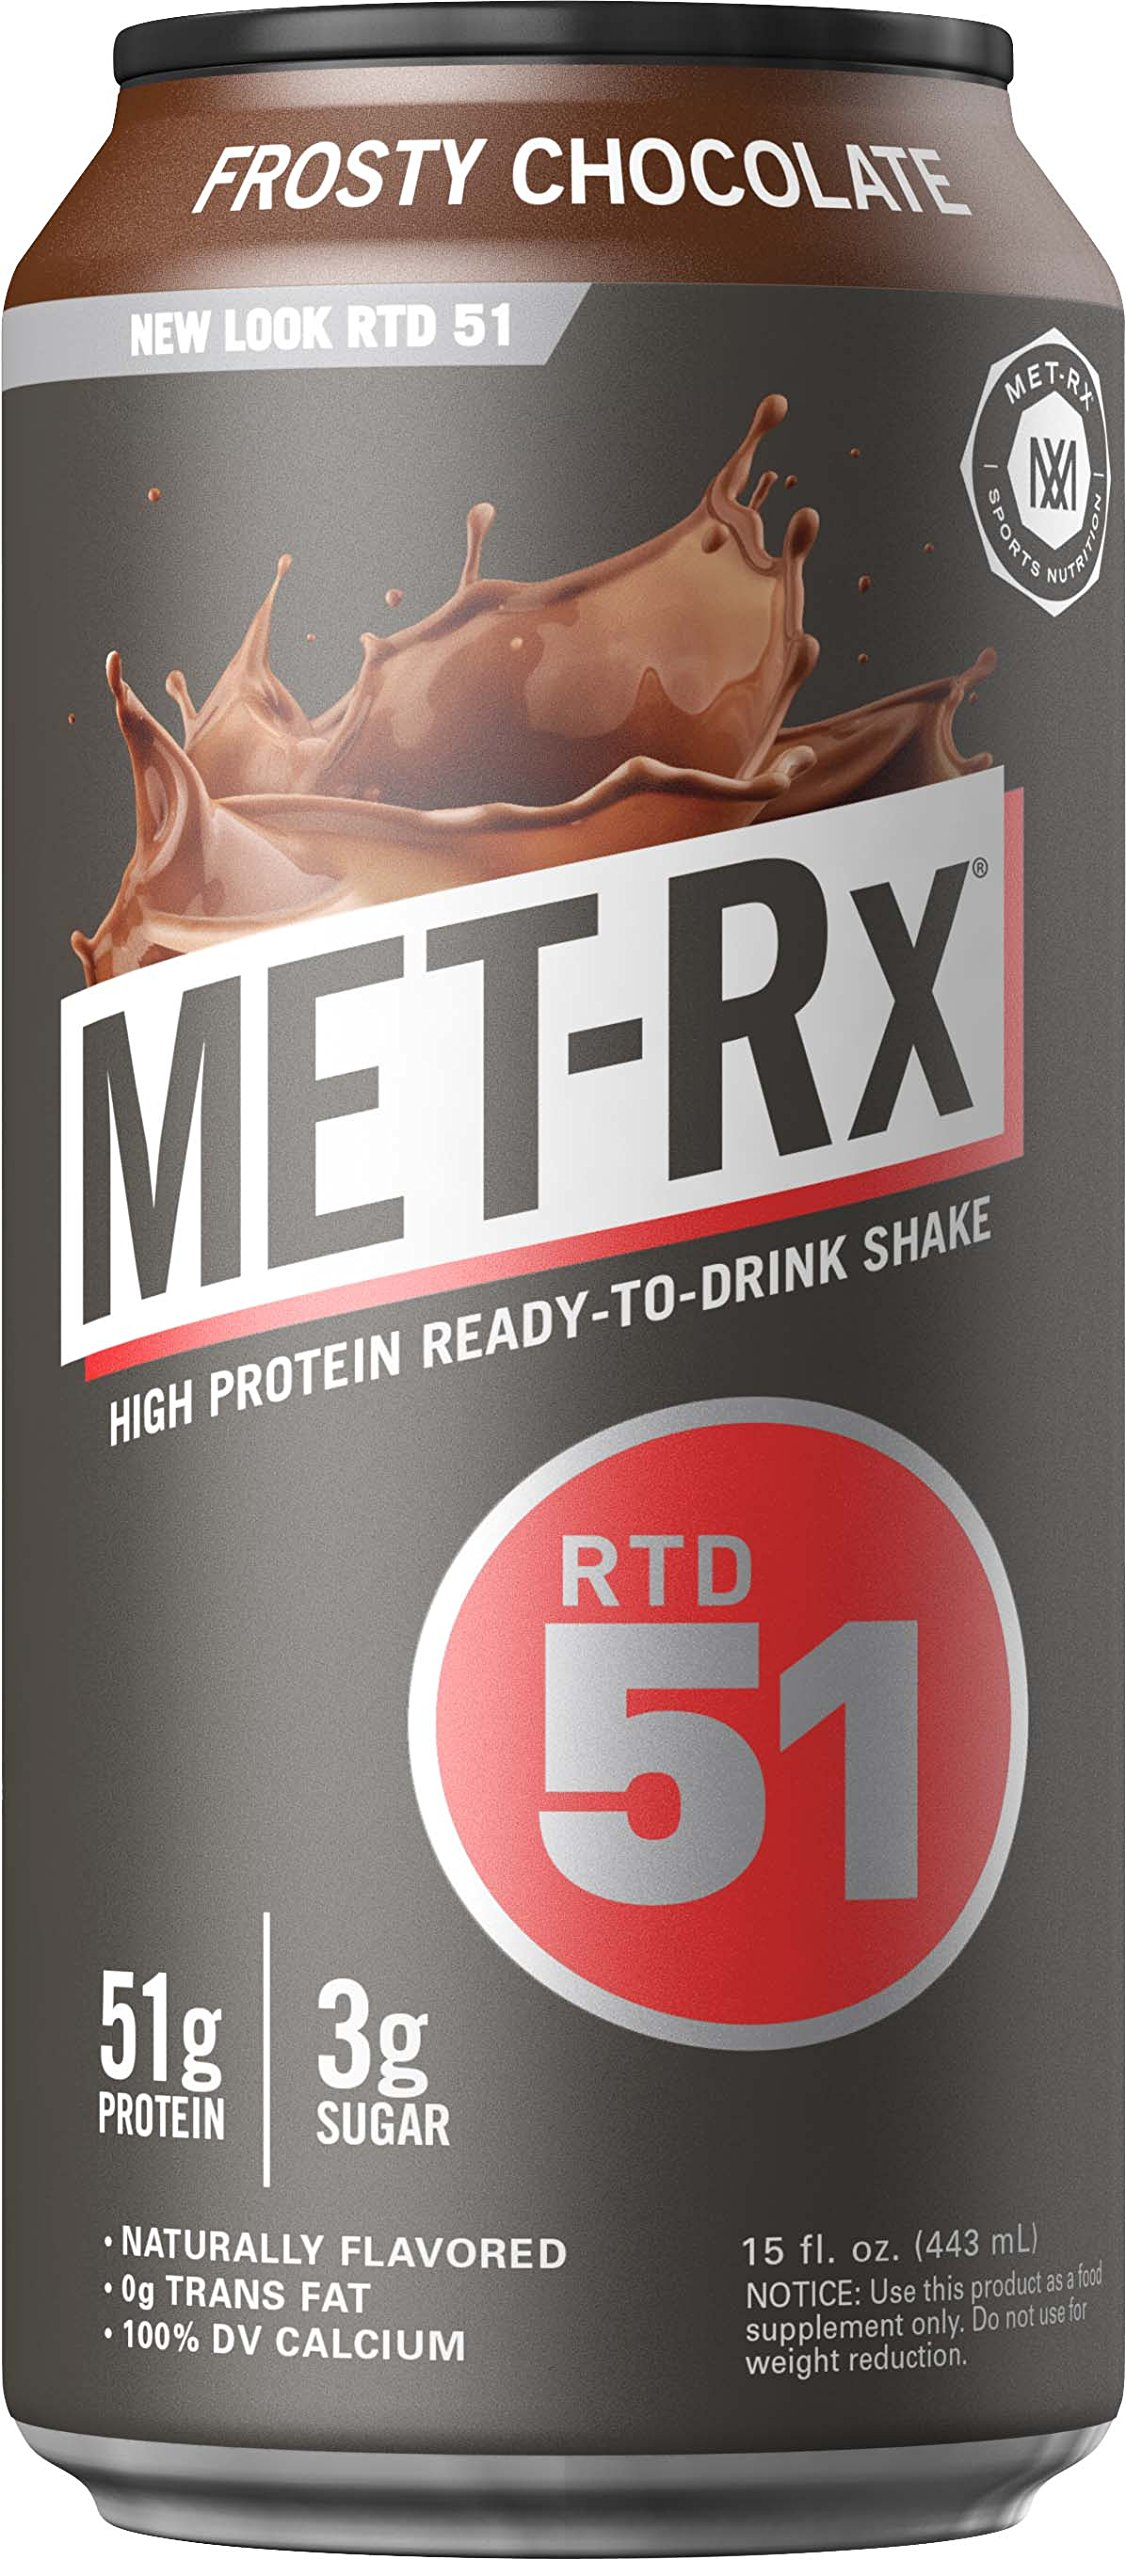 MET-Rx RTD 51, Frosty Chocolate, 15 oz. (12 count), Convenient Ready To Drink Protein Shake with 51 g of Protein, BCAAs, and Other Amino Acids and Vitamins, Great for Post-Workout Recovery